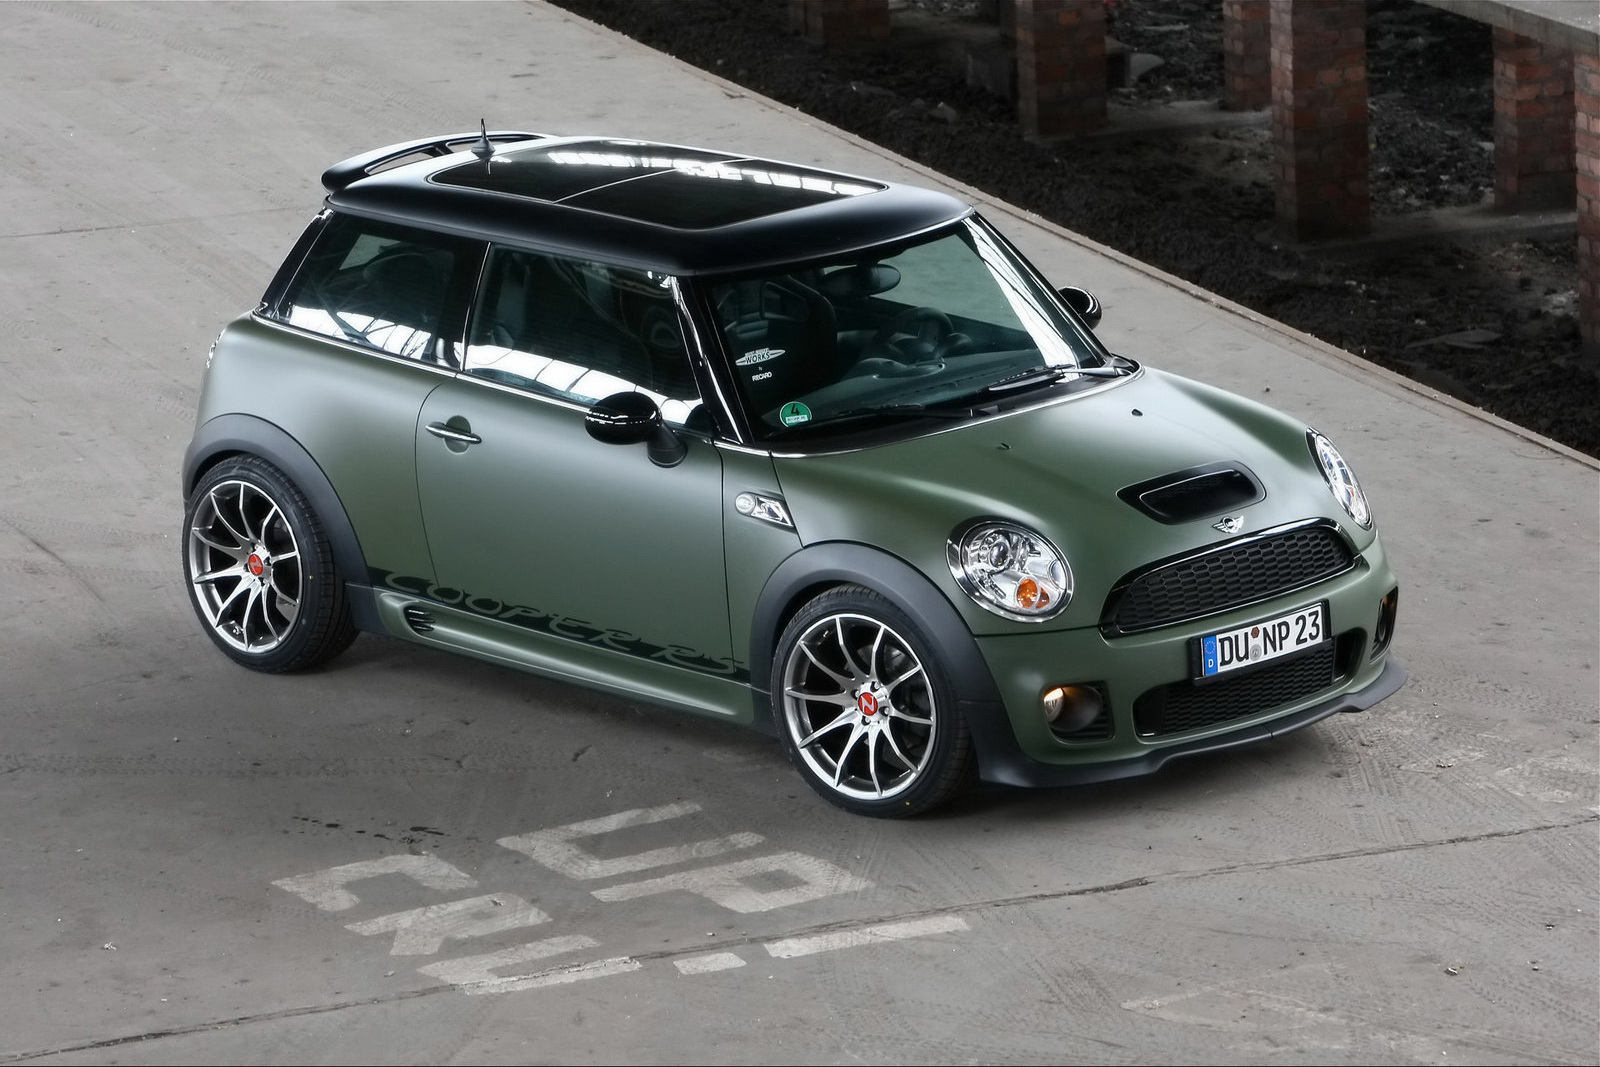 the car nowack motors releases mini cooper s packages with up to 260hp. Black Bedroom Furniture Sets. Home Design Ideas